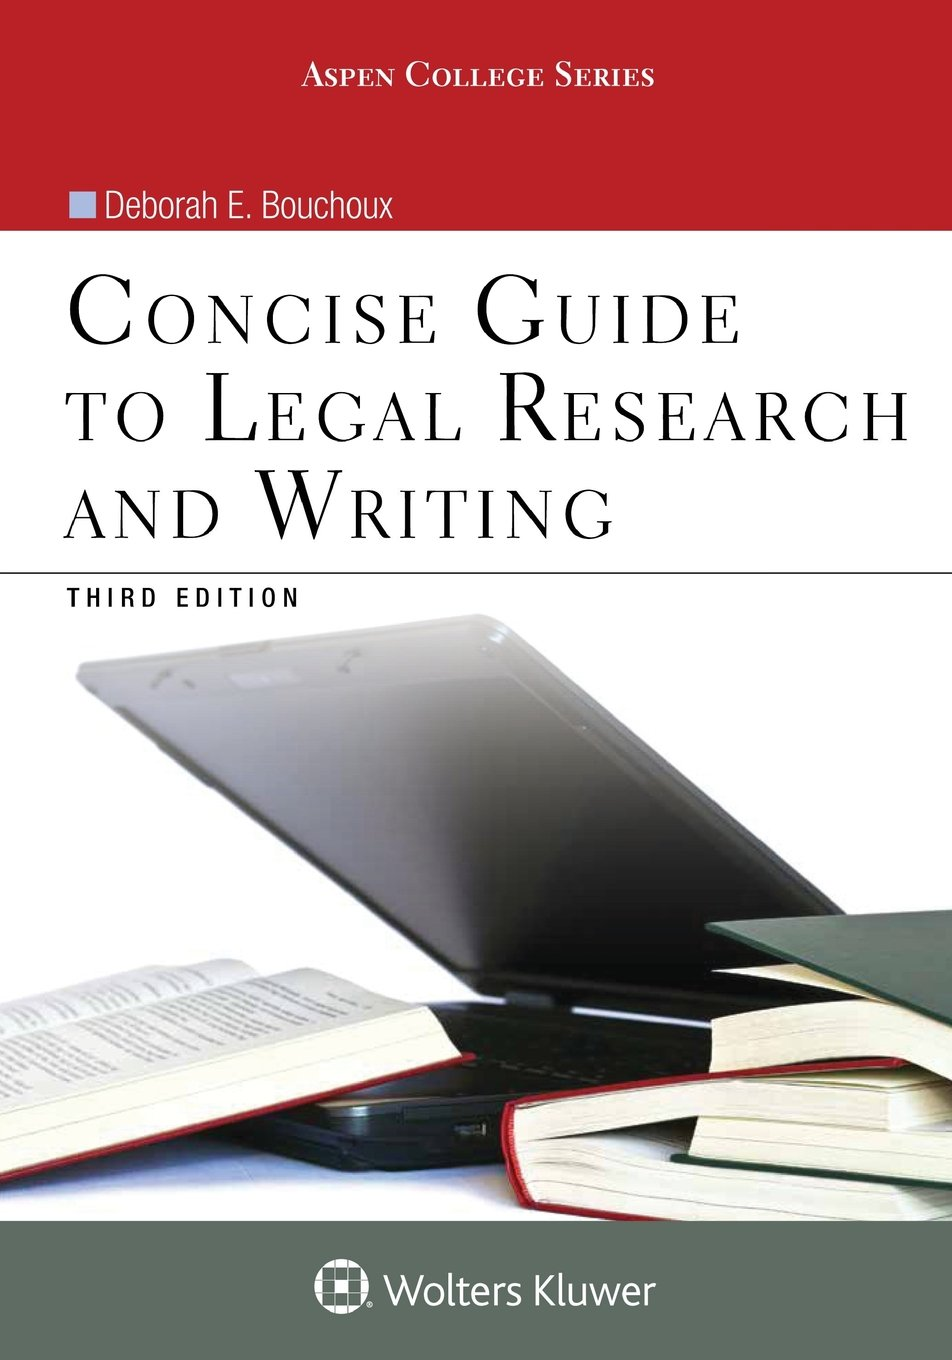 Concise Guide To Legal Research and Writing (Aspen College)